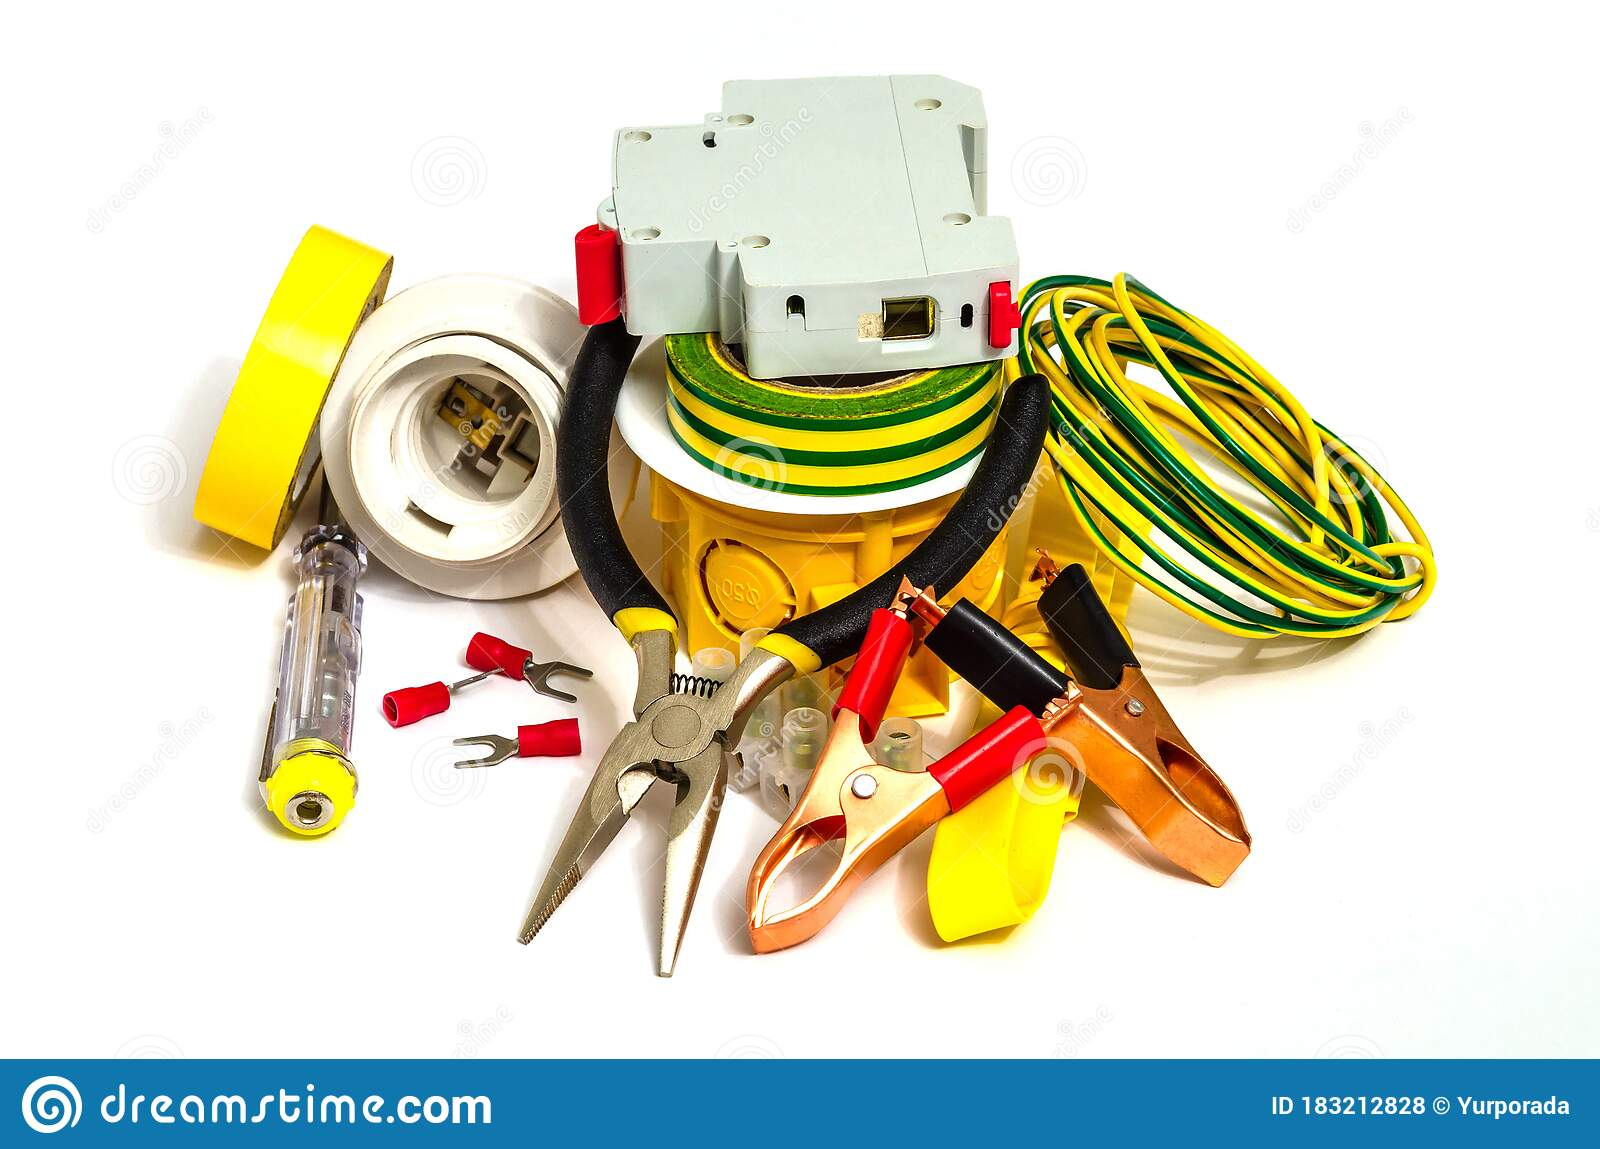 Kit Spare Parts And Tools For Electrical Repairs In Home Or Office On White Background Stock Photo Image Of Object Accessory 183212828